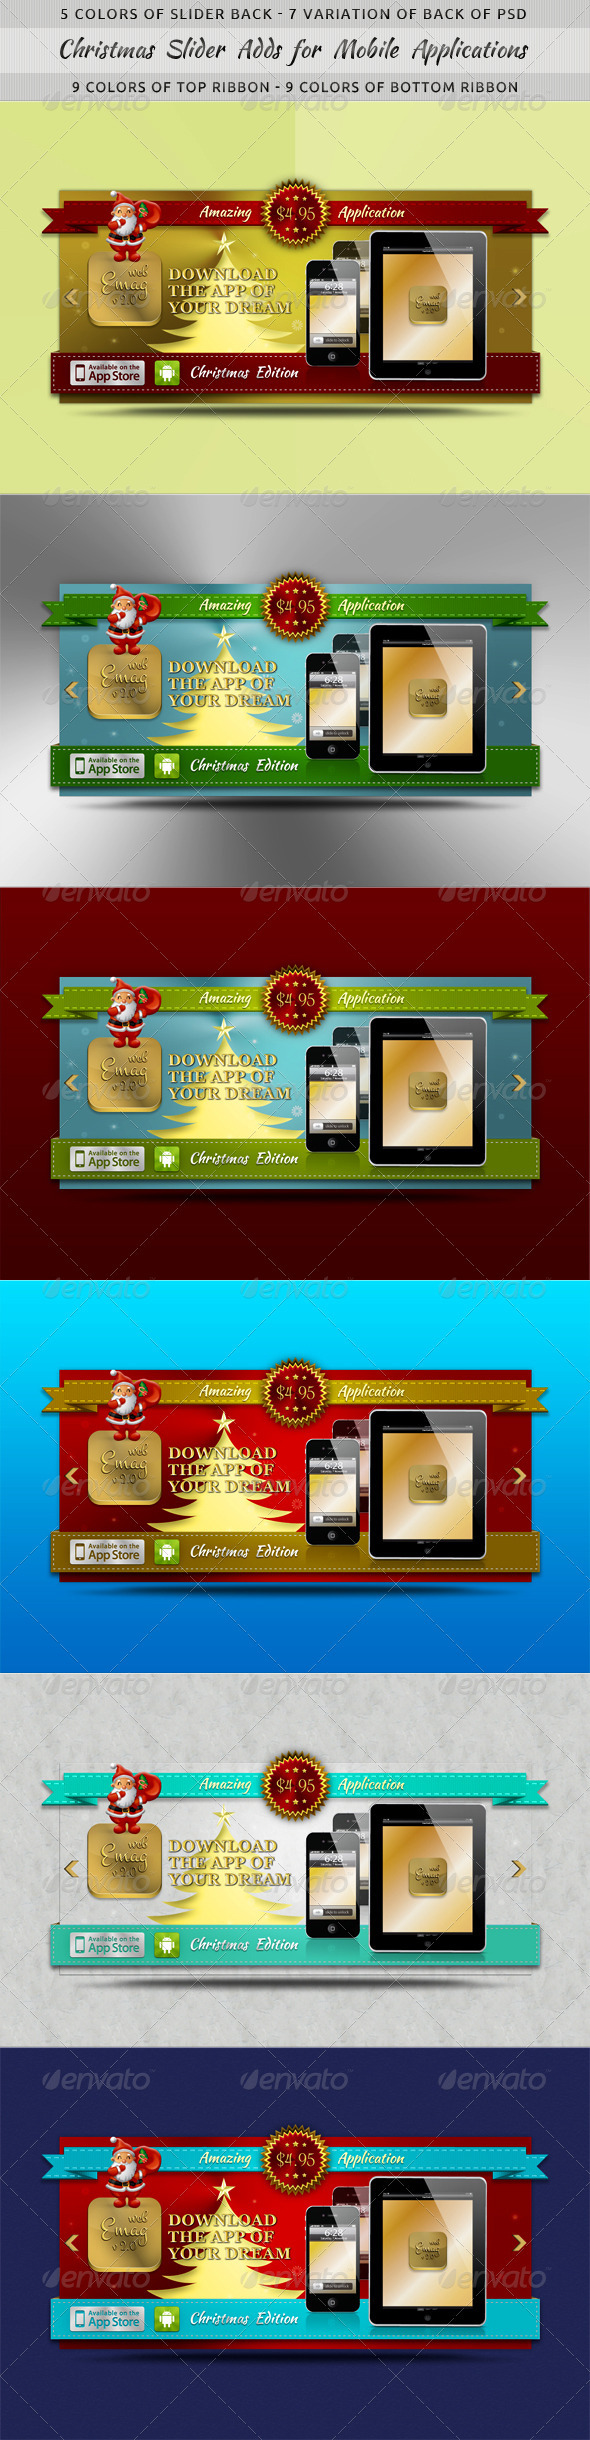 Christmas Slider Ads for Mobile Applications - Sliders & Features Web Elements